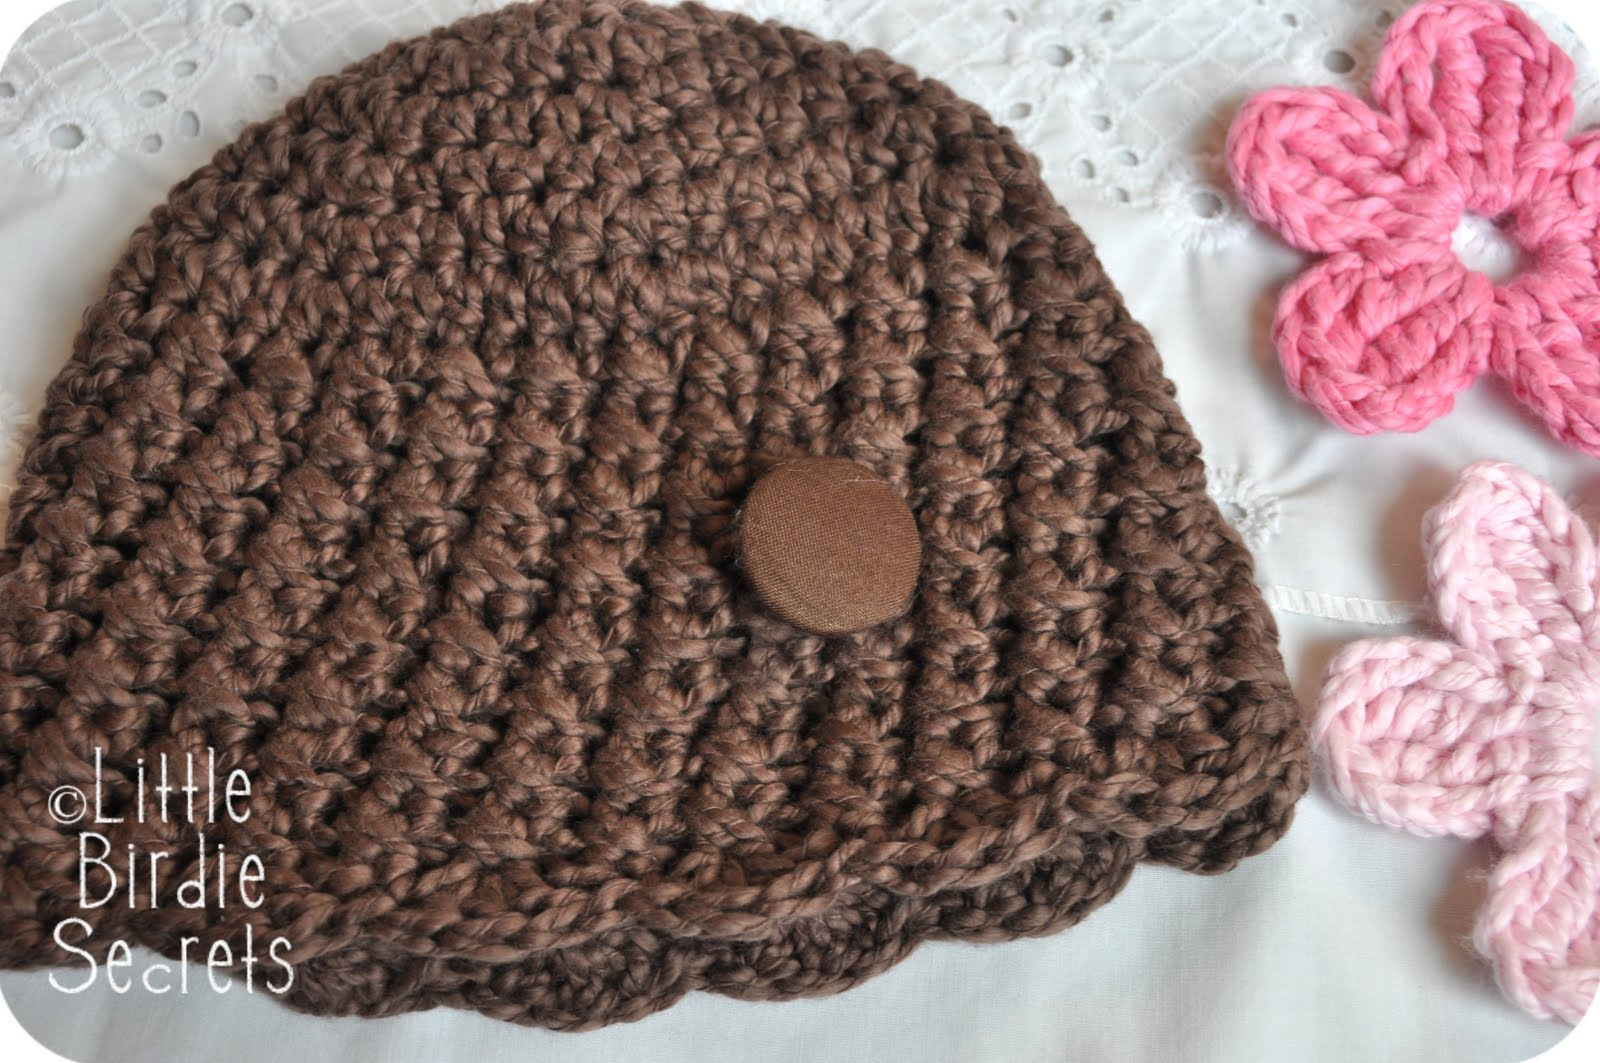 Crochet Crochet Crochet : Free Crochet Hat Patterns - Free Adult, Child & Baby Hat Crochet